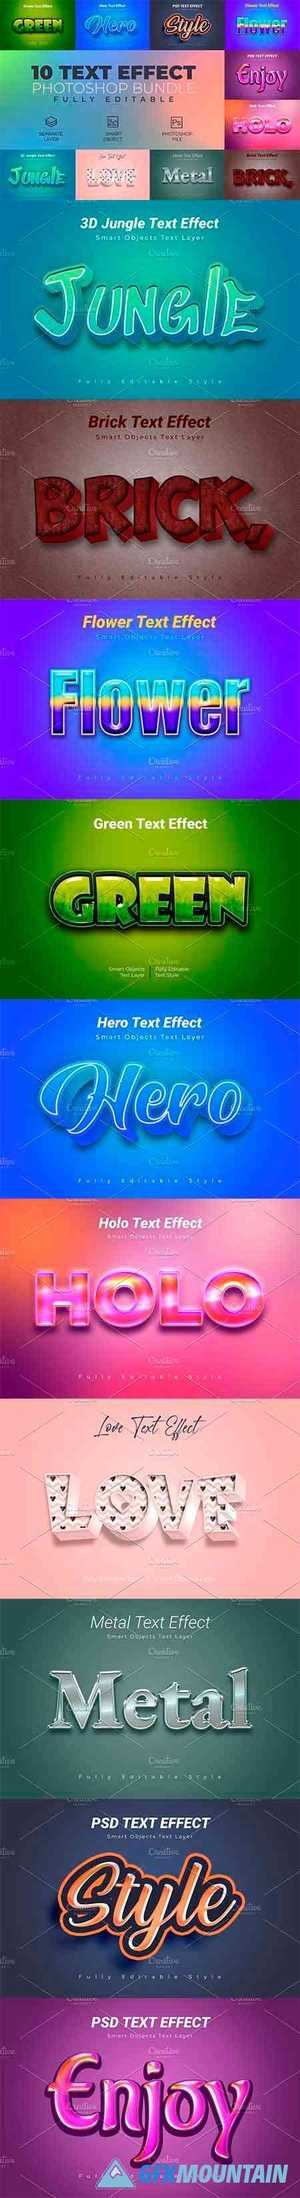 Photoshop Text Effect Bundle 10 in 1 4524356